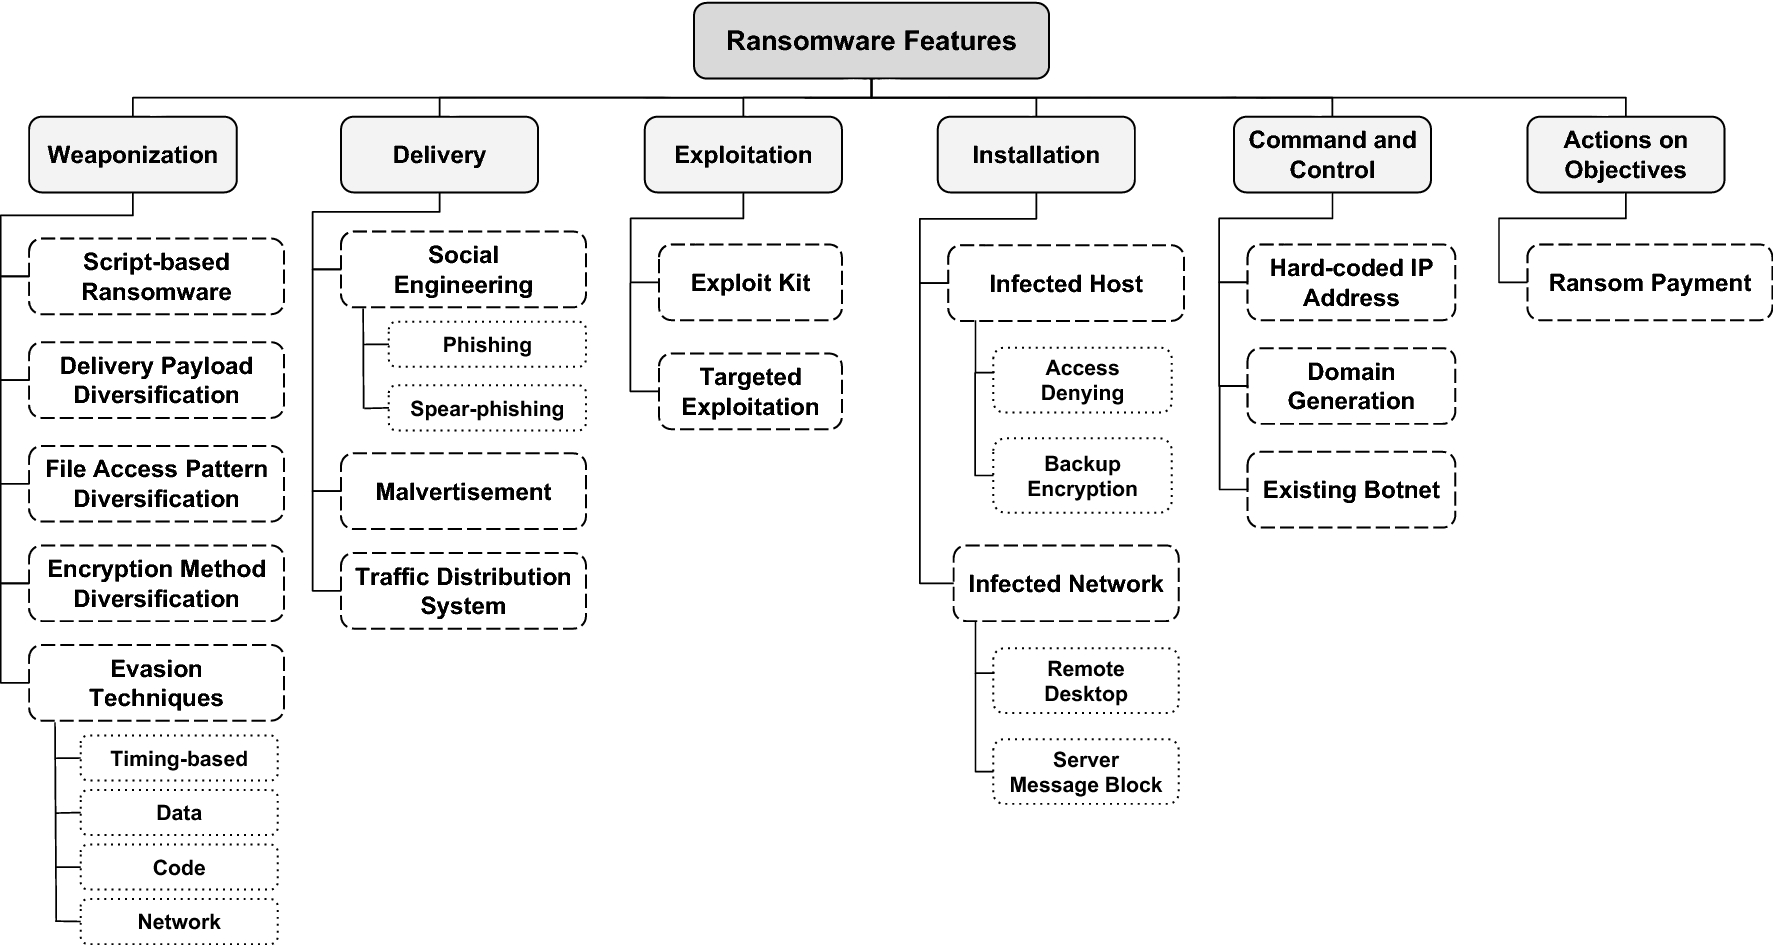 A Cyber-Kill-Chain based taxonomy of crypto-ransomware